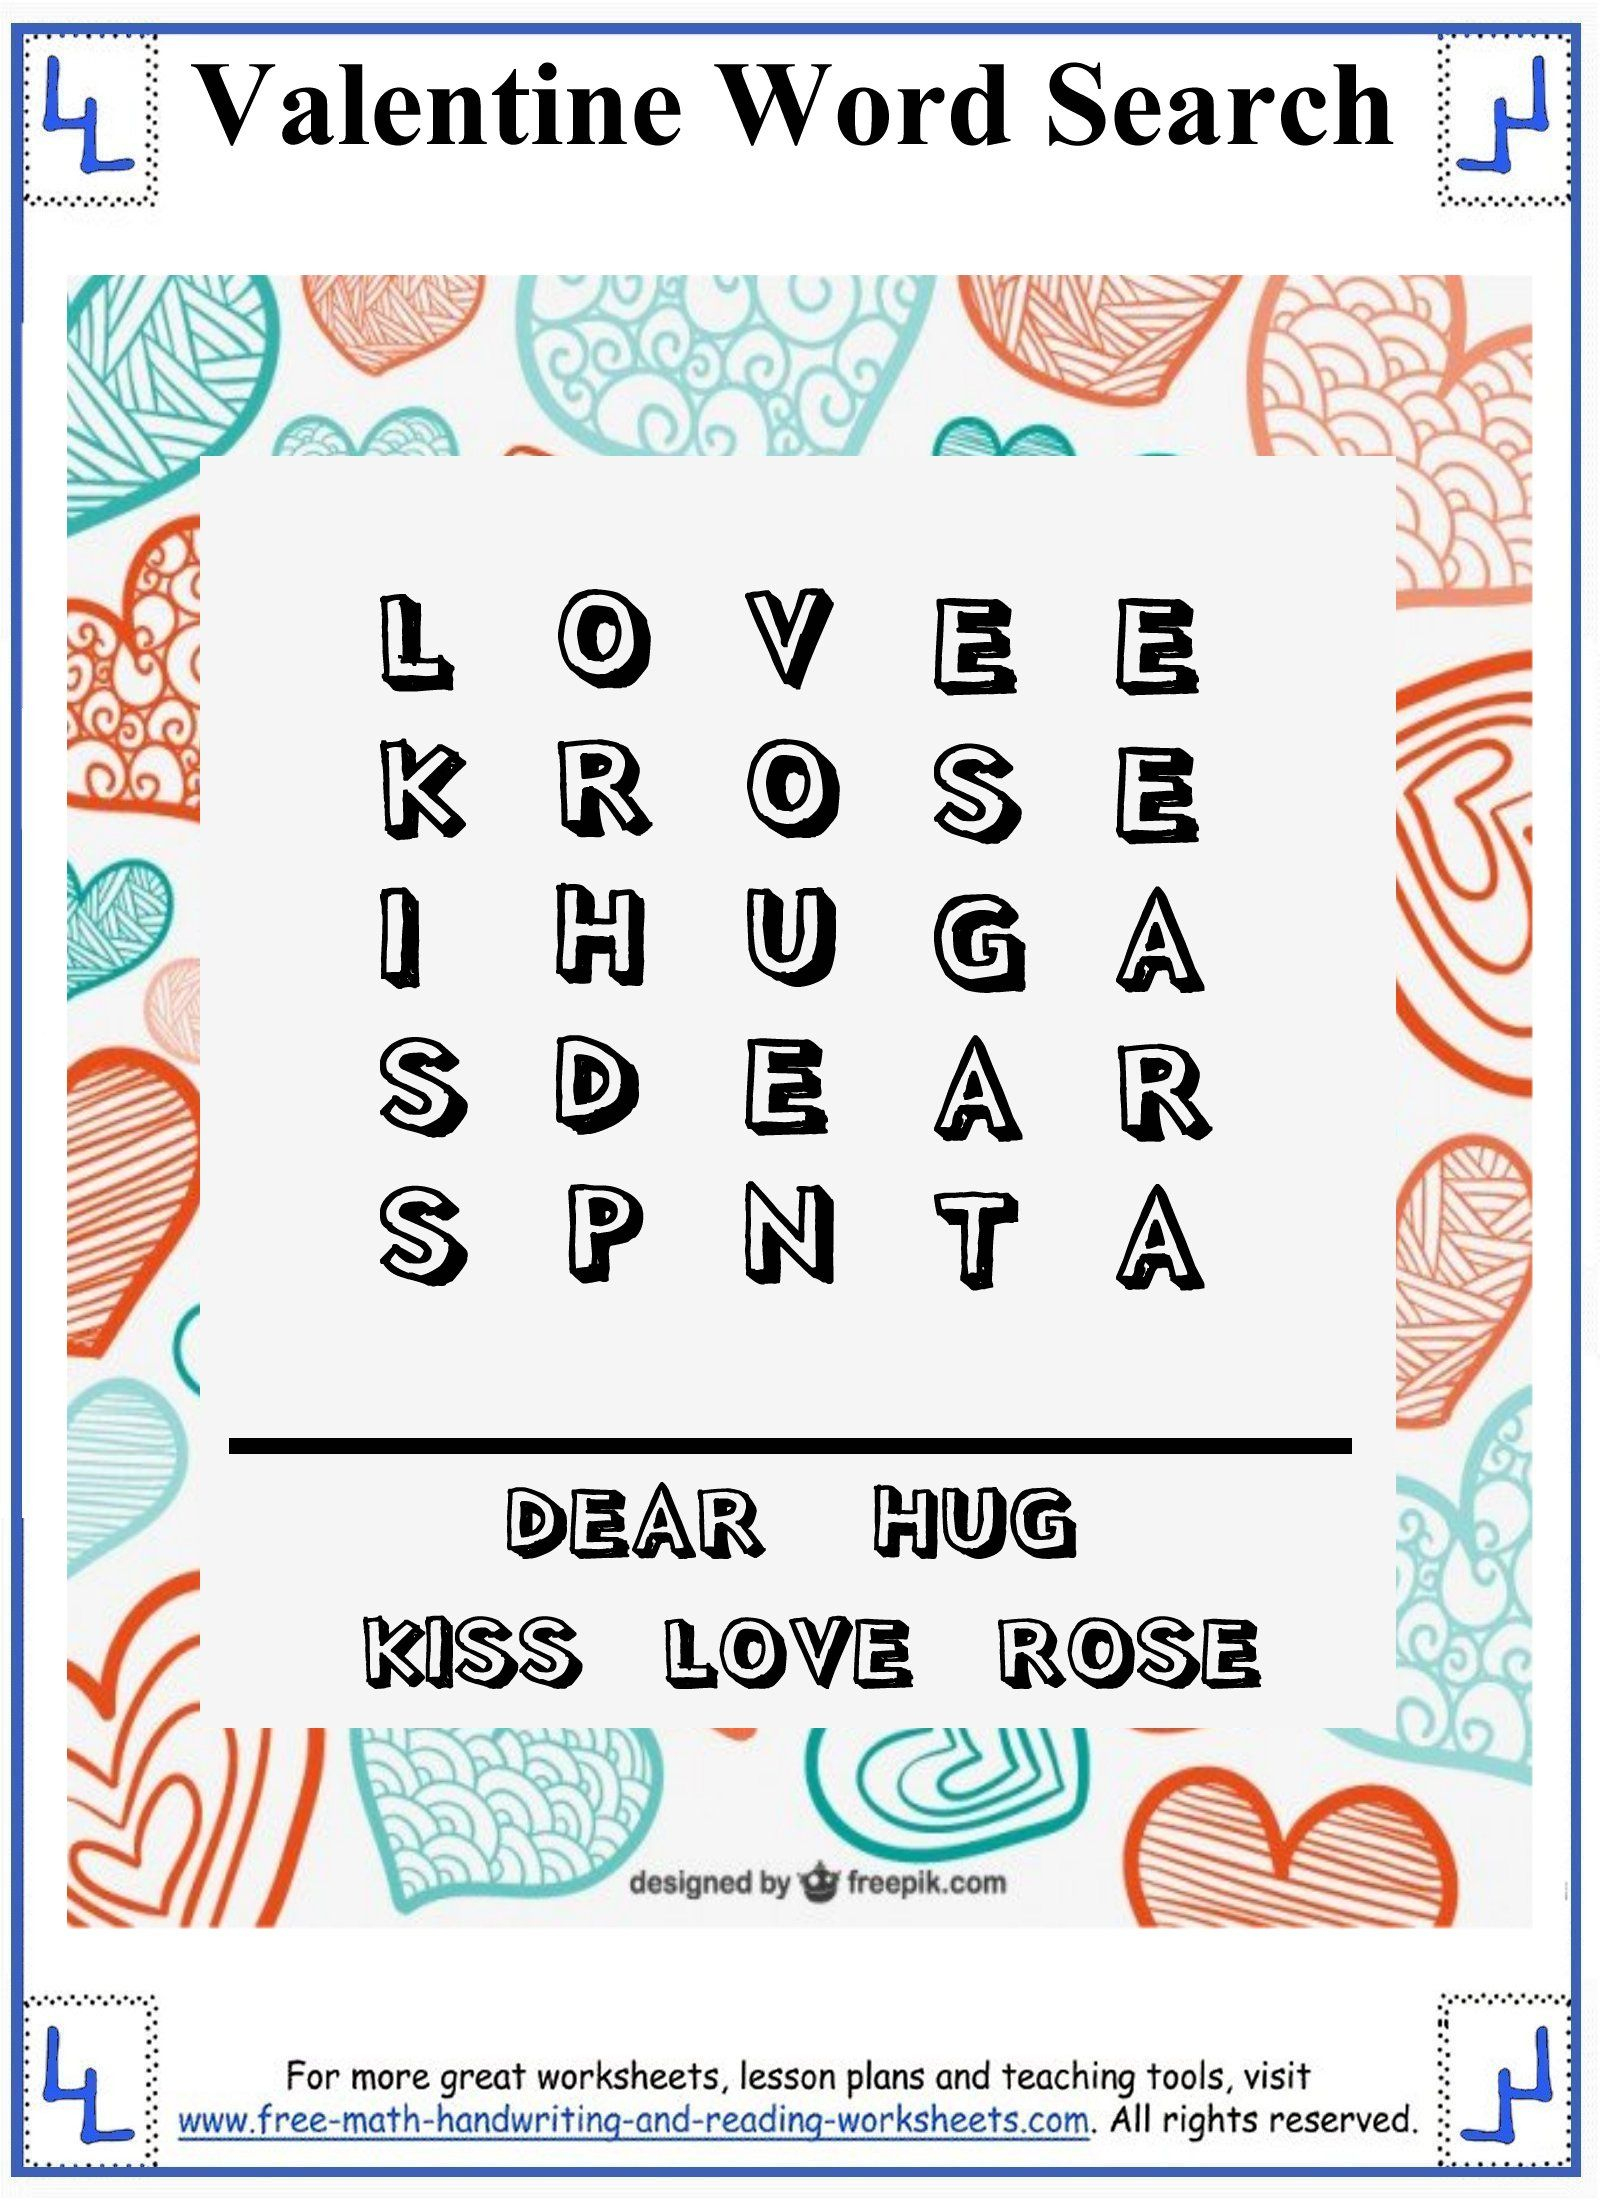 Valentine Word Search - Printable Puzzles - Easy 5X5 Grid For - Printable Valentine Puzzles For Adults